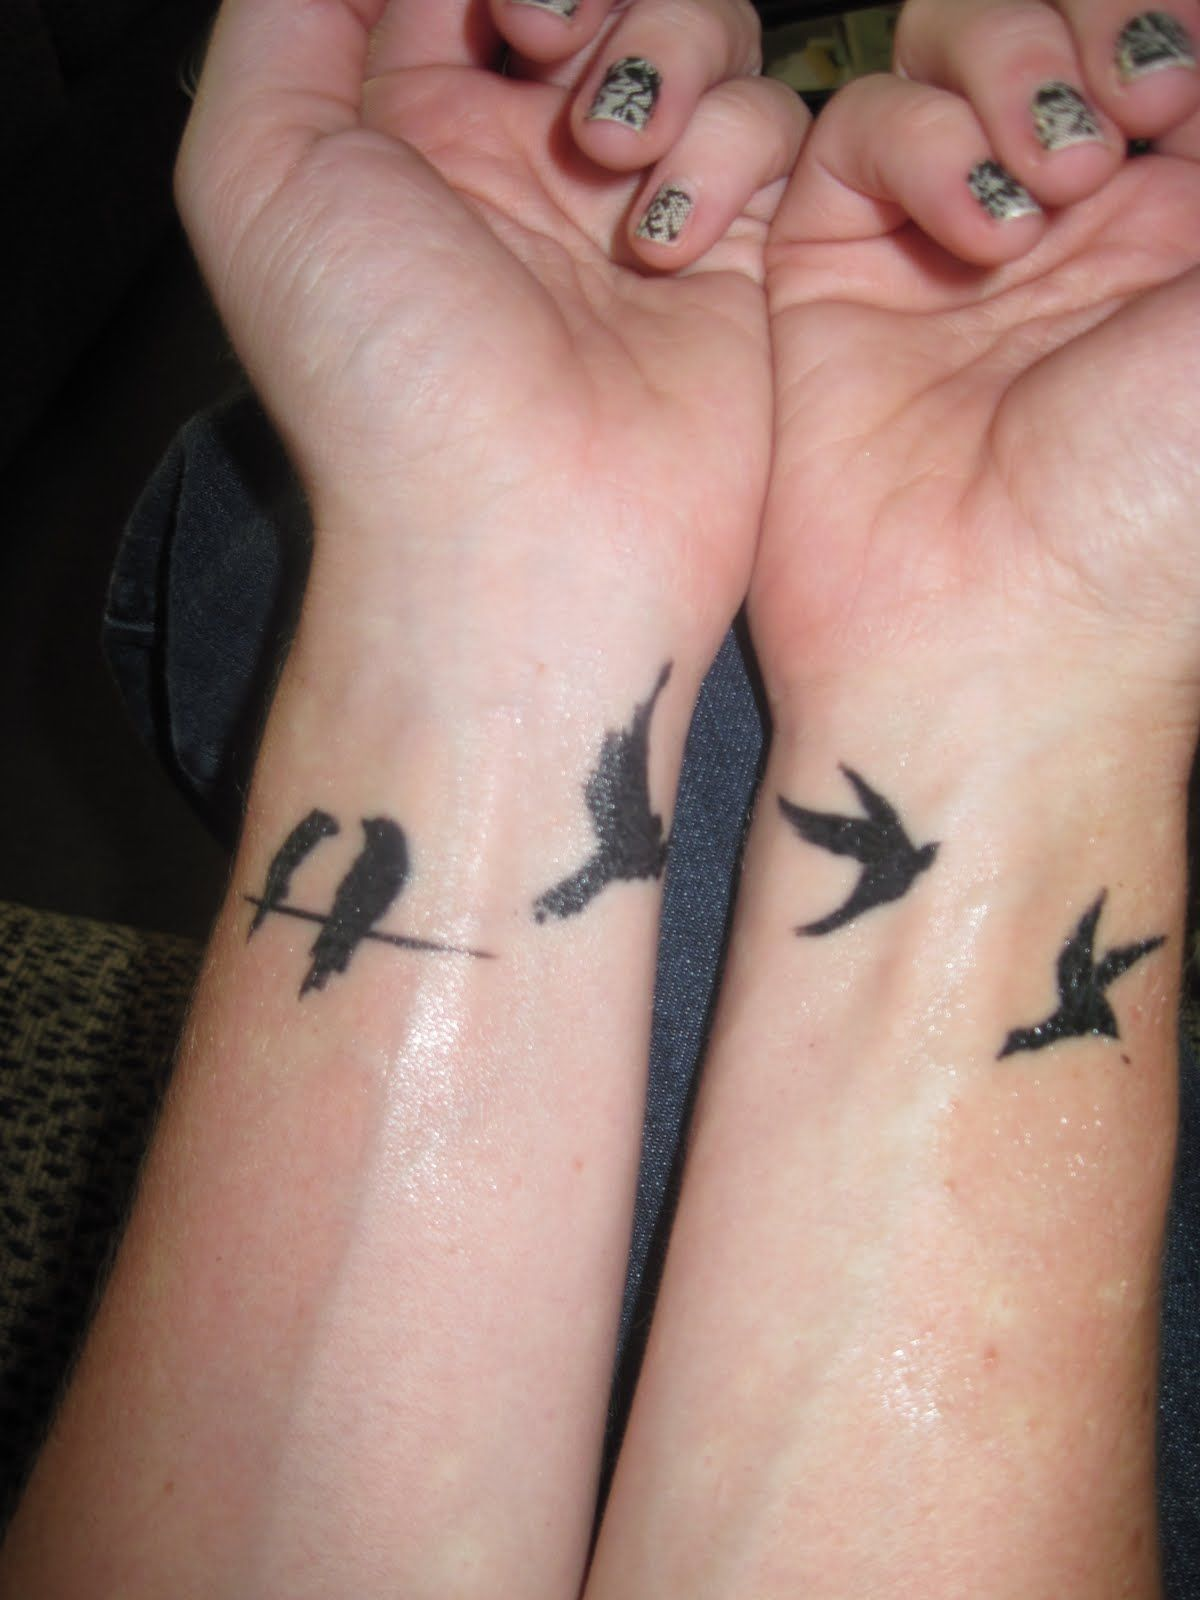 30 Small Tattoos for Girls Design Ideas Tattoo designs